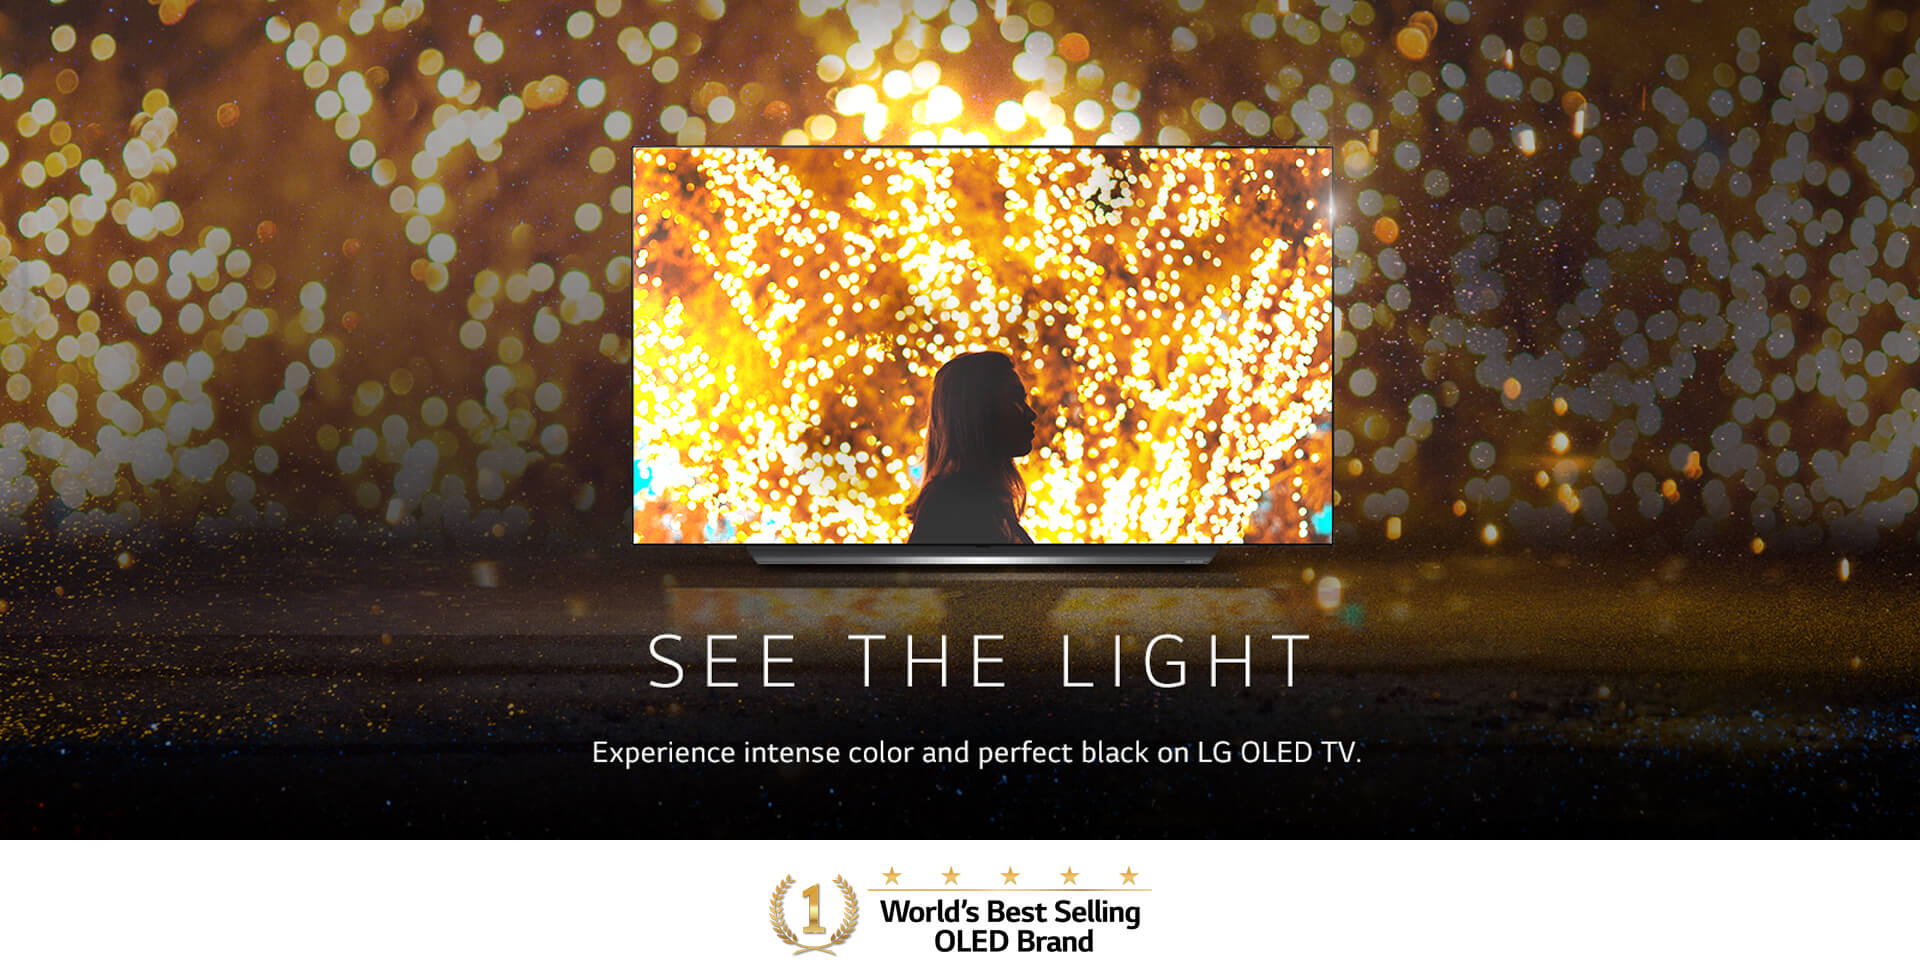 LG OLED TV AI ThinQ: See How Good The Best TV Can Be | LG USA